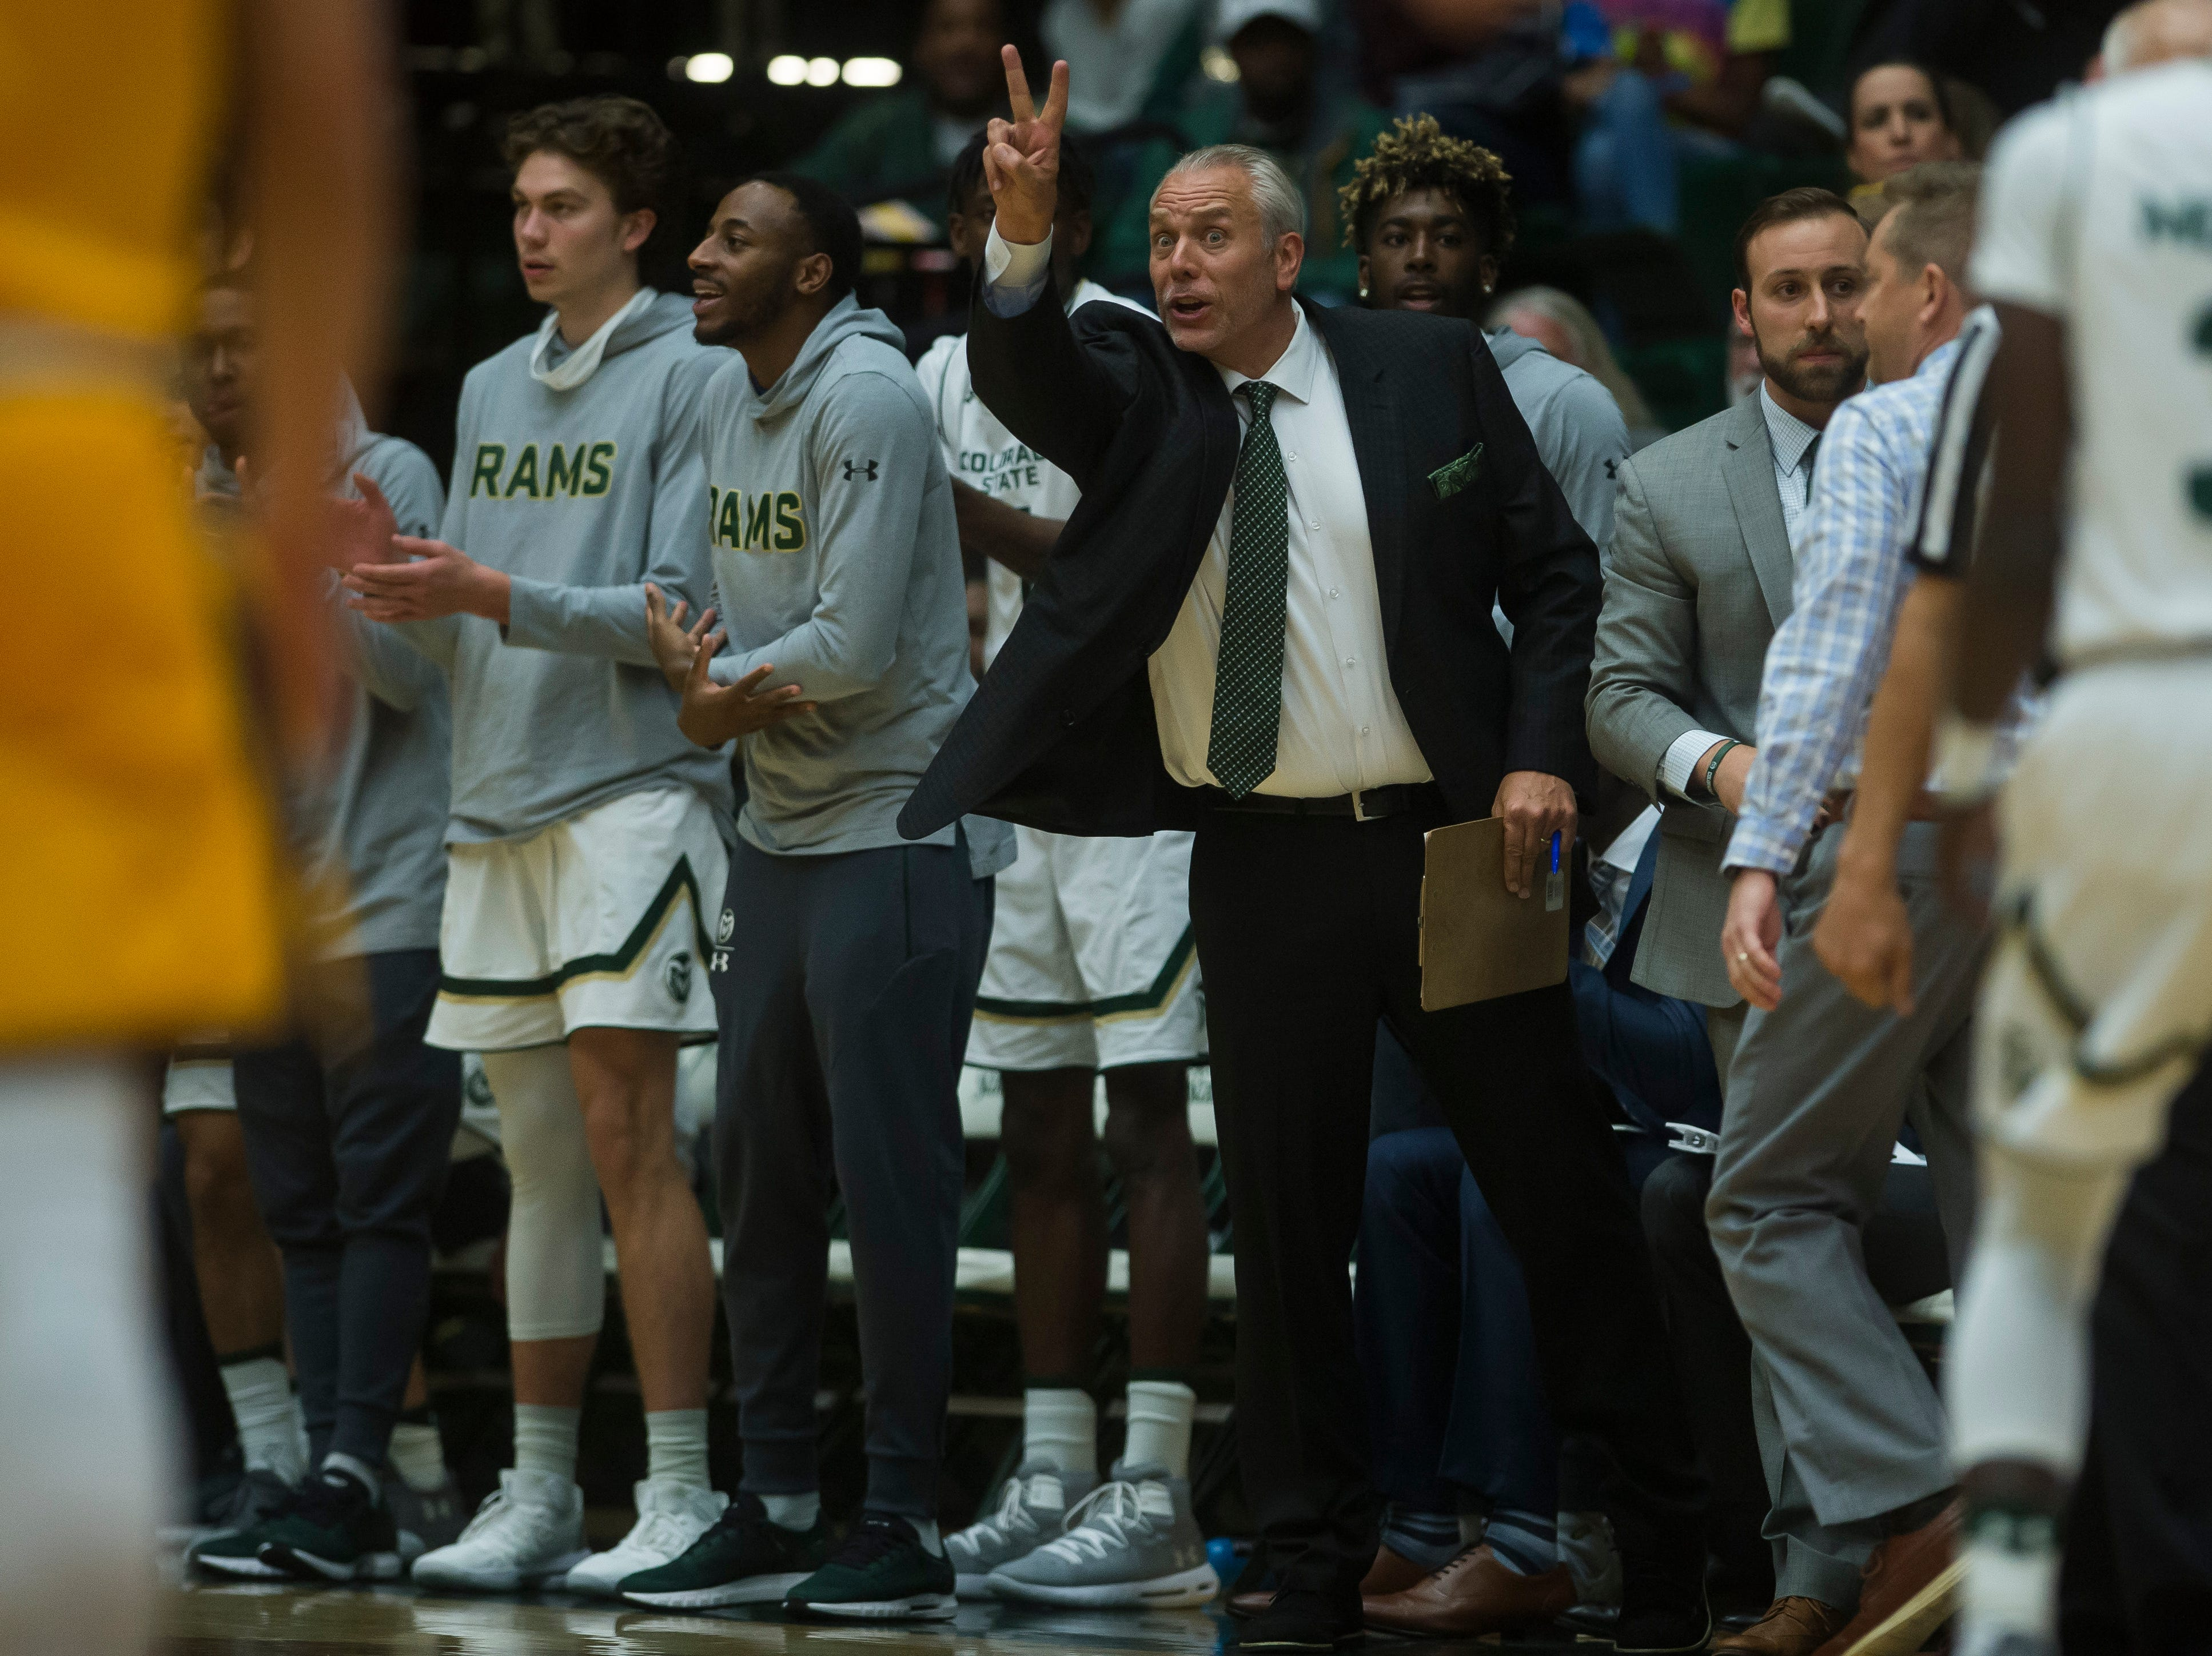 Colorado State University assistant coach Dave Thorson signals to the team during a game against Colorado Christian University on Wednesday, Nov. 7, 2018, at Moby Arena in Fort Collins, Colo.